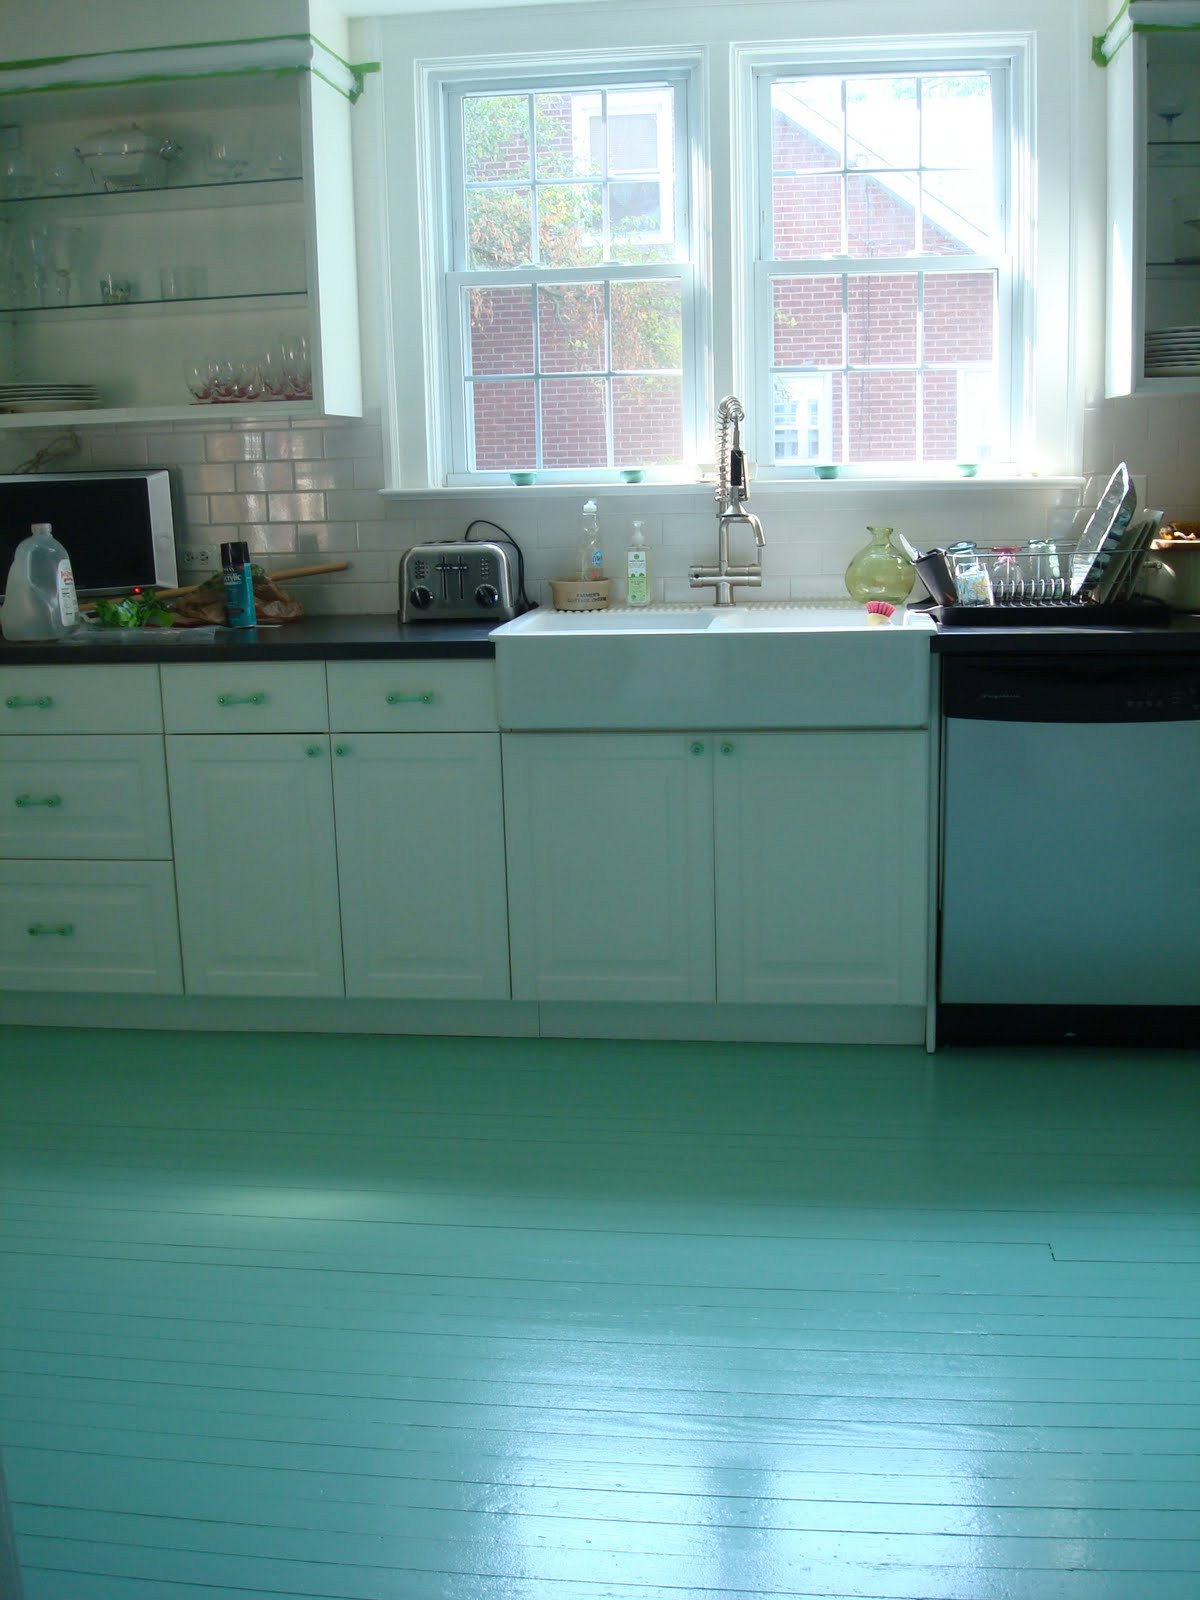 Best ideas about Painted Floors DIY . Save or Pin High Heeled Foot in the Door DIY Painted Kitchen Floor Now.